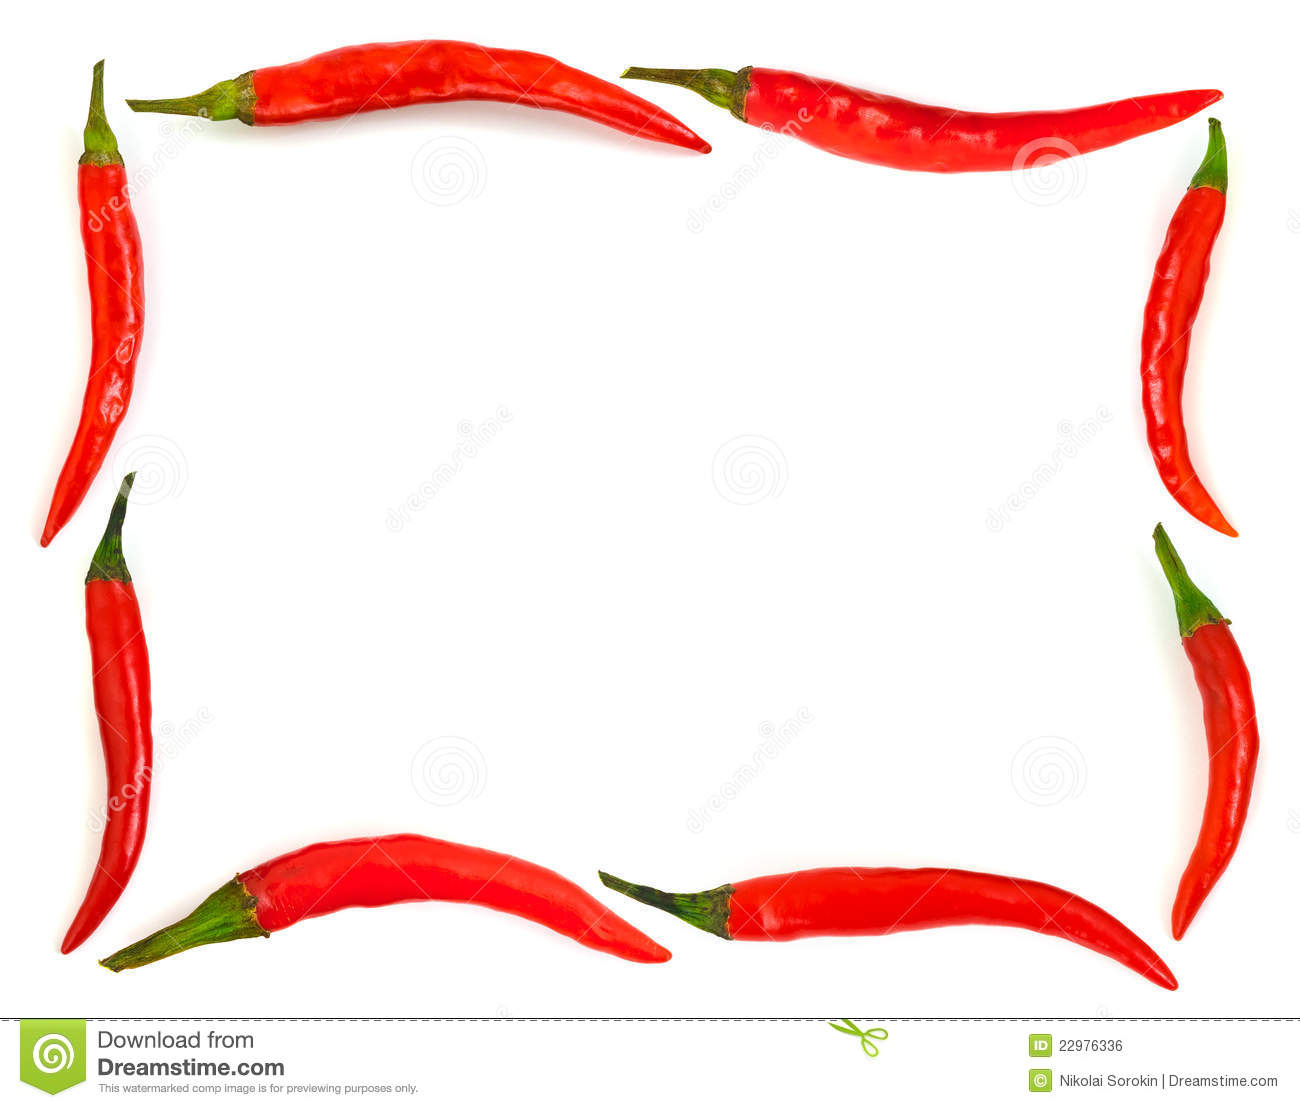 Chili pepper clipart #18